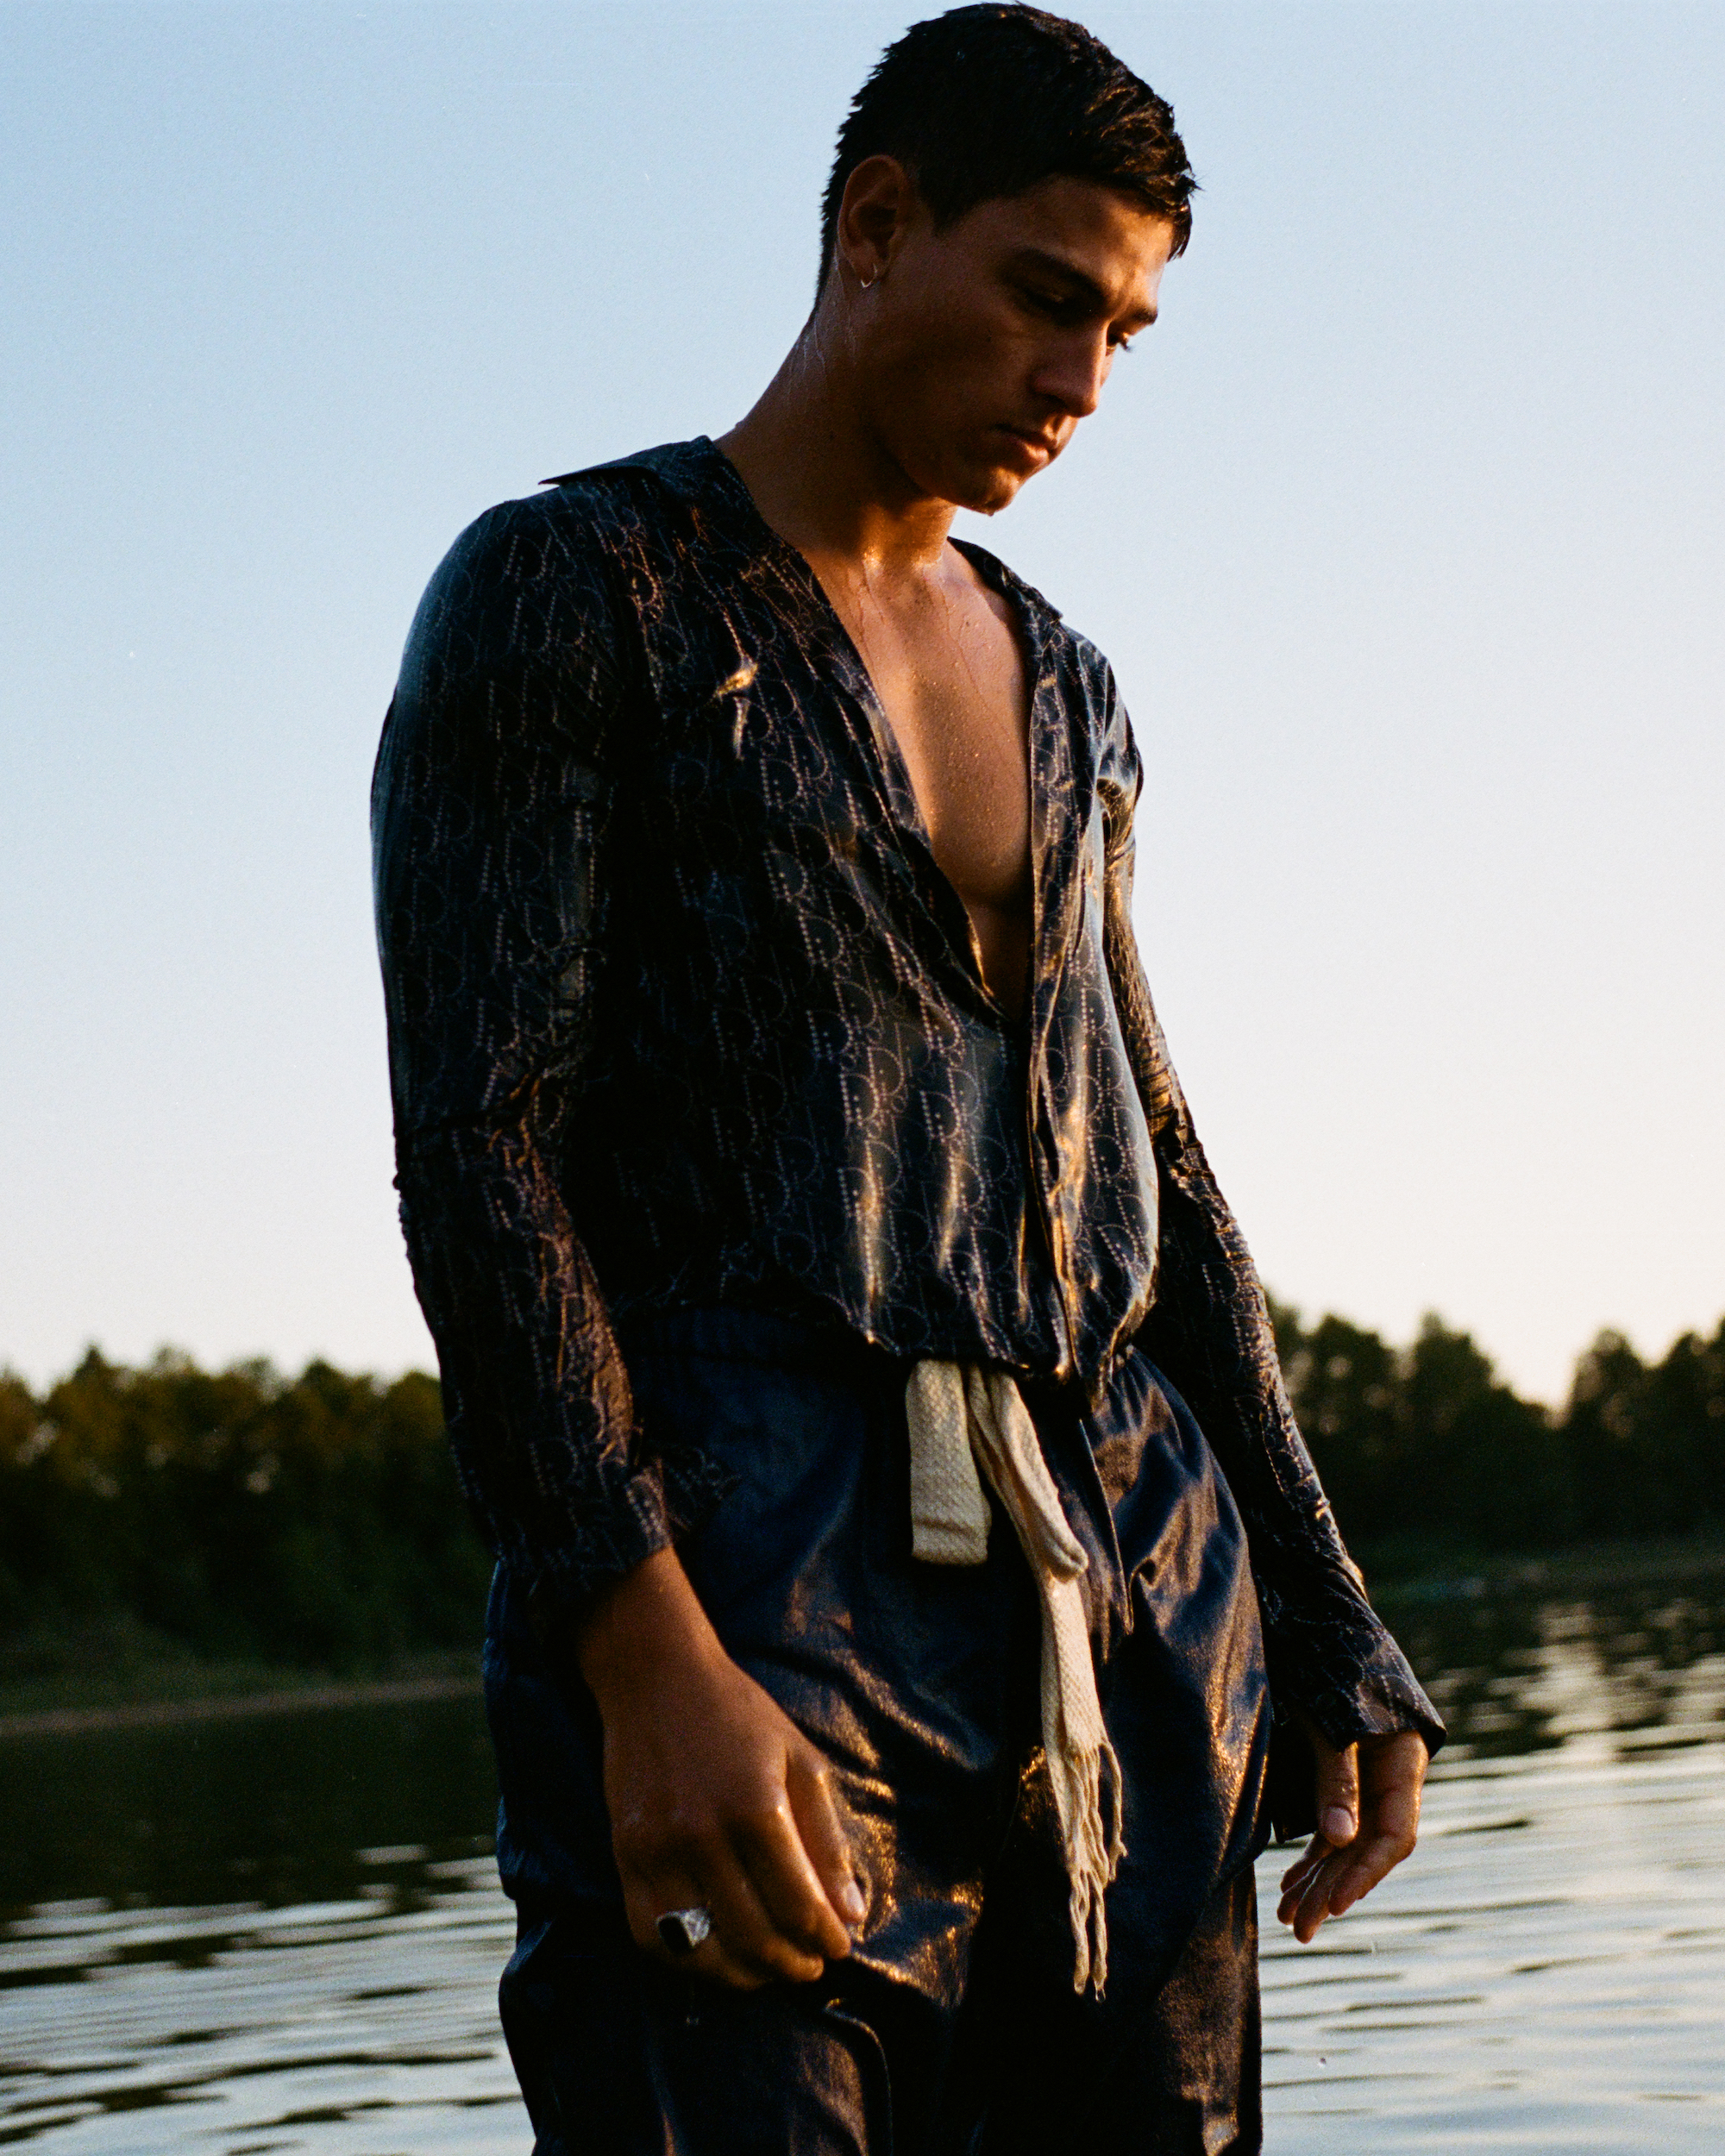 Emilio Sakraya wearings in loose fitting clothing in a river